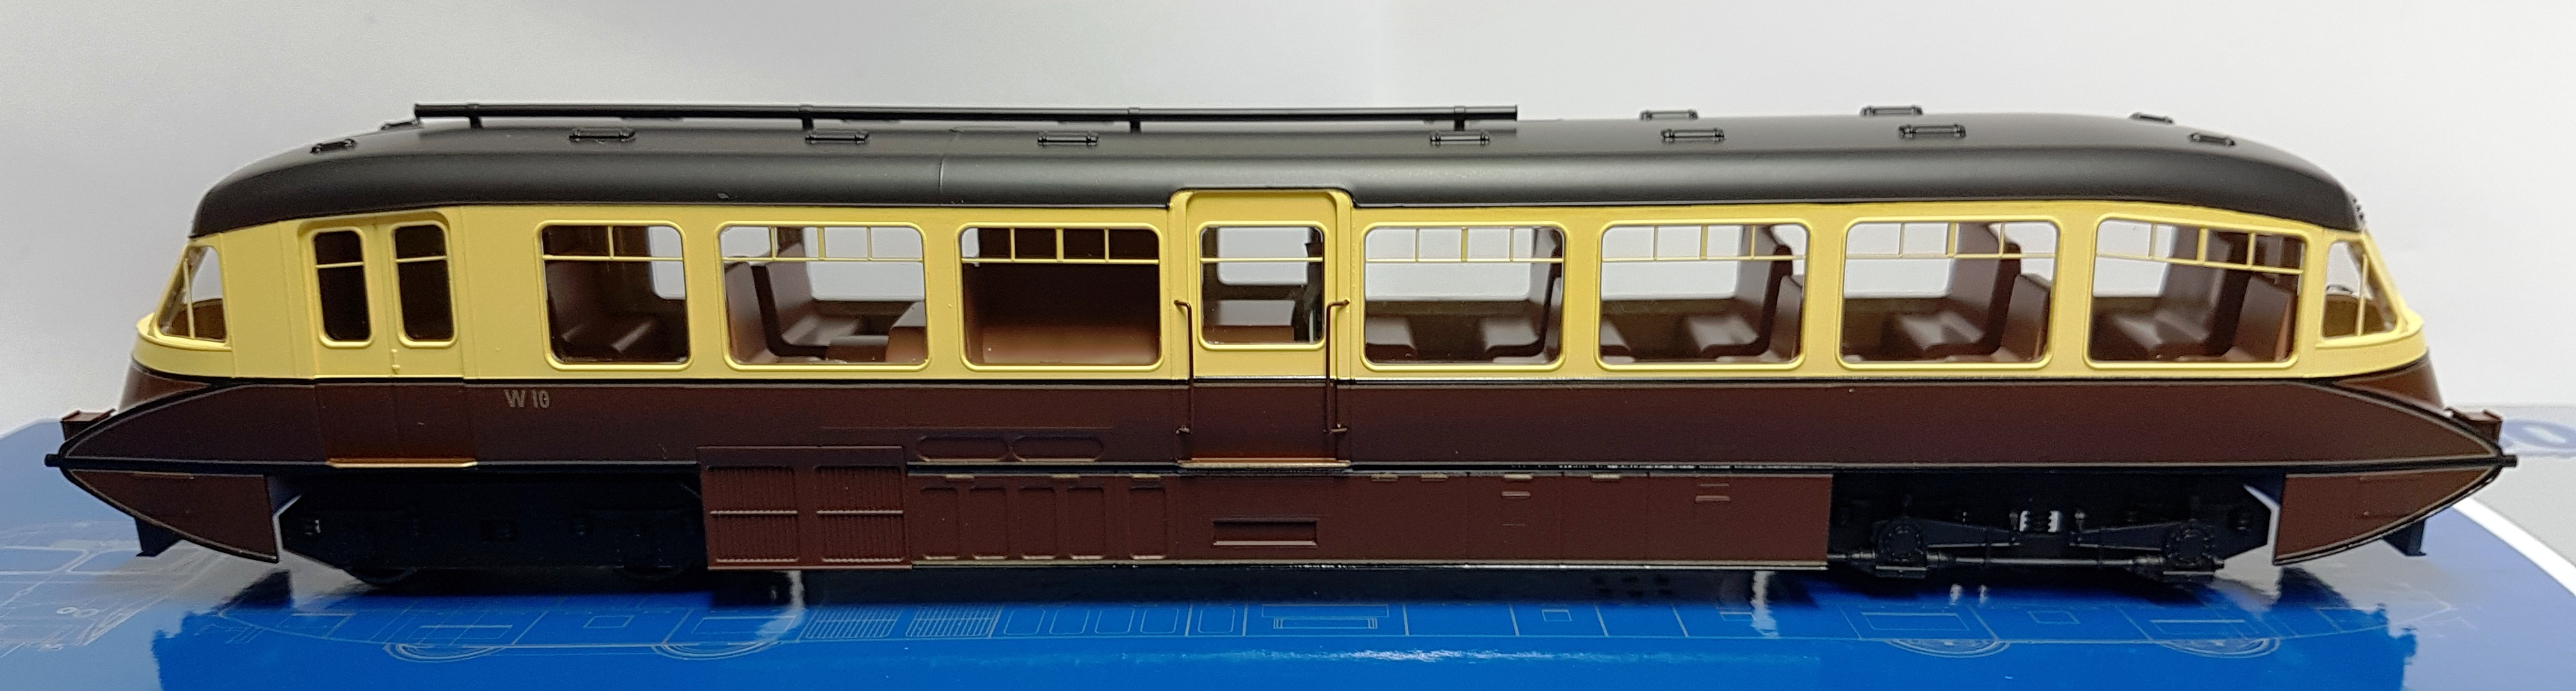 Dapol 4D-011-002 Streamlined Railcar W10 BR Lined Chocolate & Cream